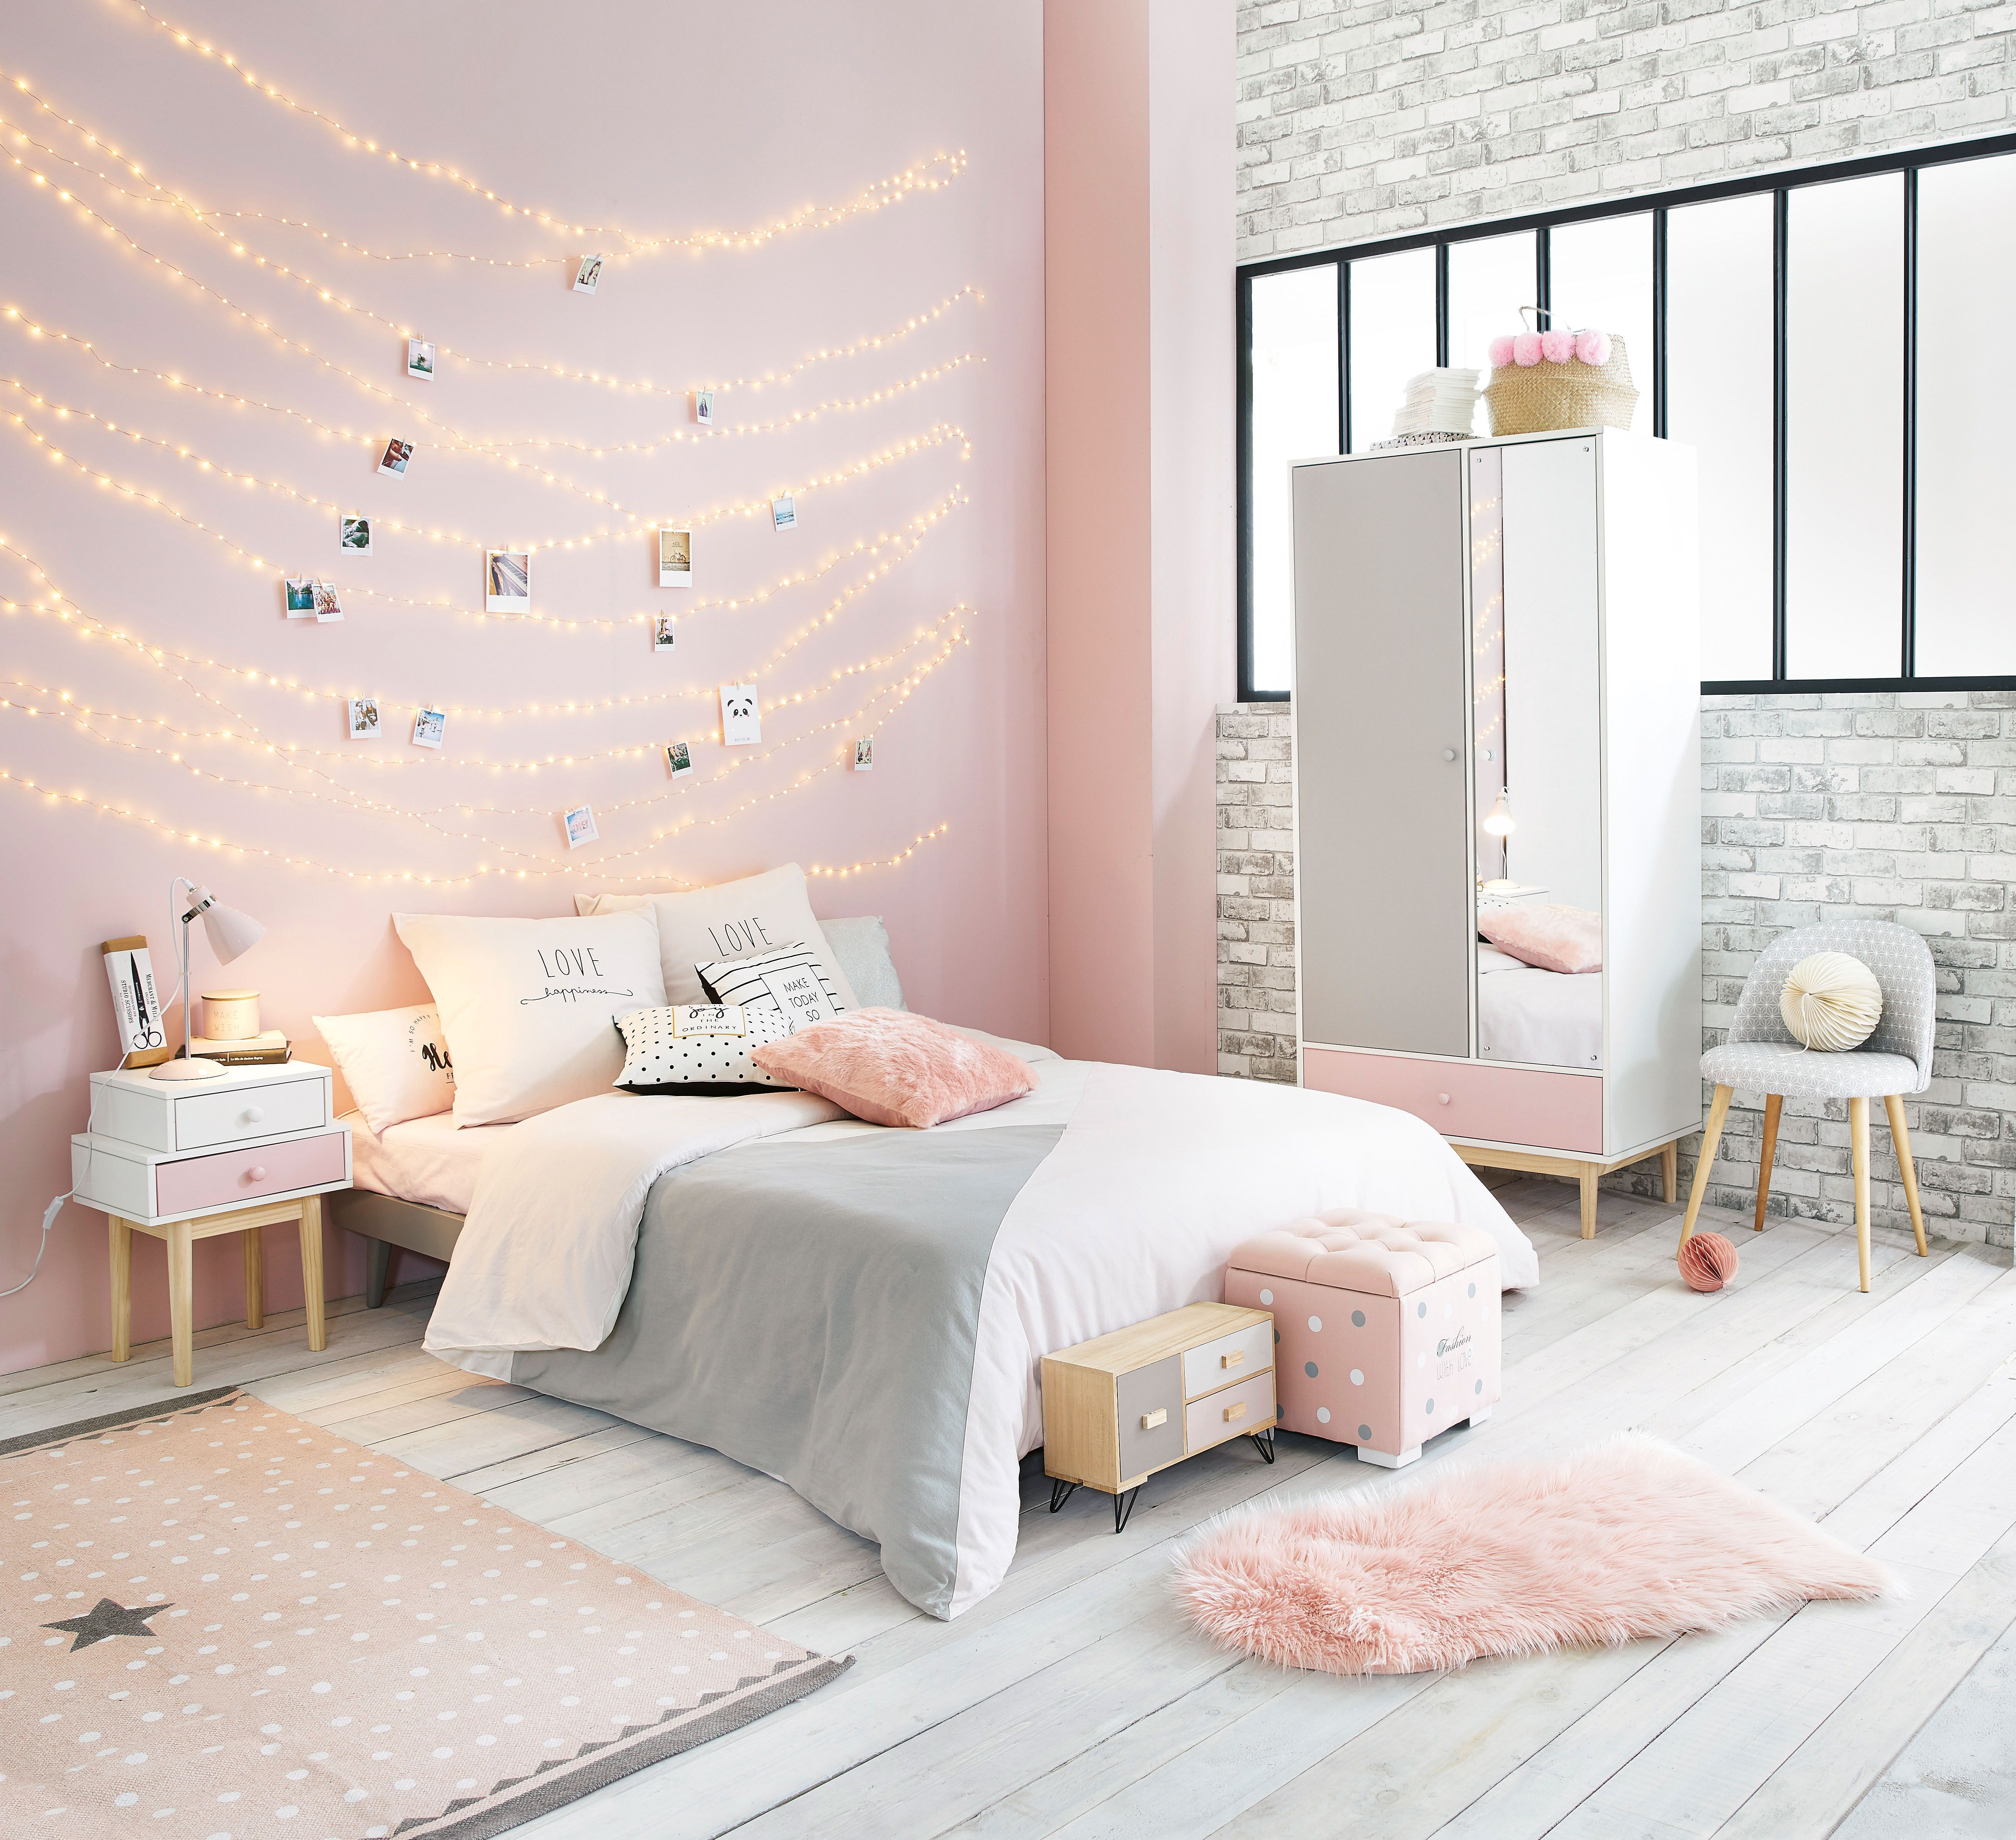 50 Cute Teenage Girl Bedroom Ideas | Pinterest | Pink white ...